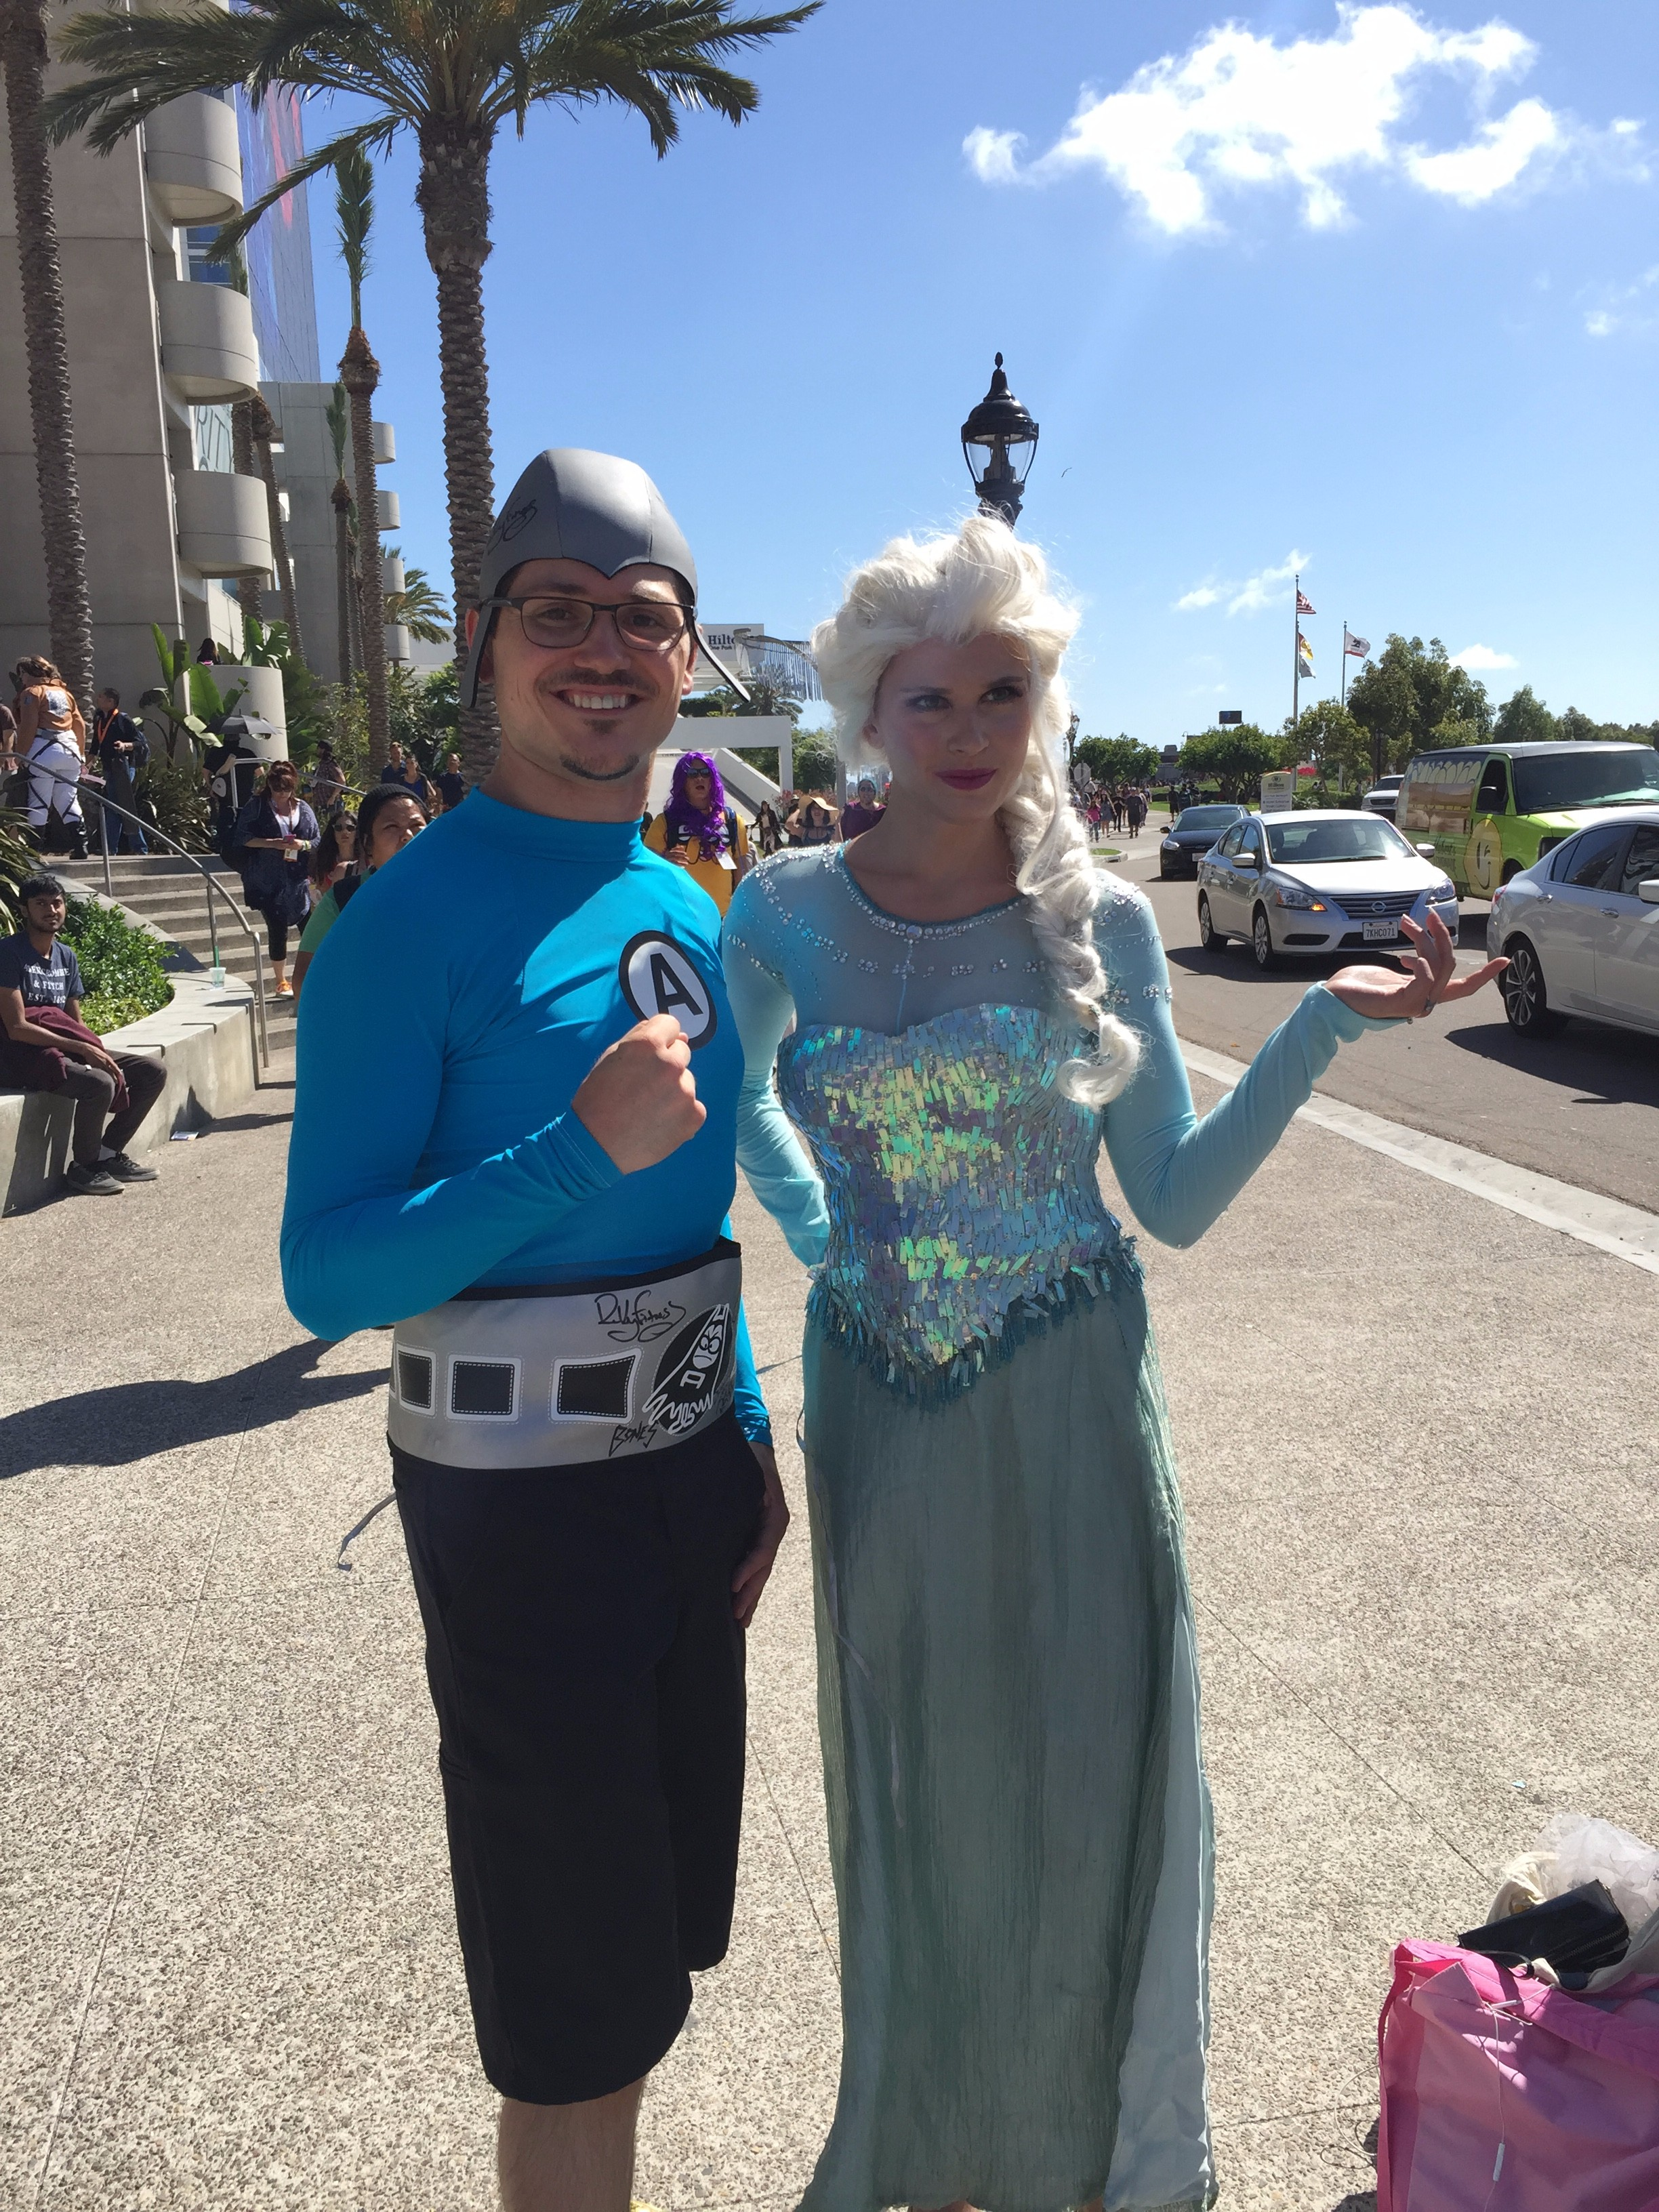 Aquabat and Elsa at SDCC 2015